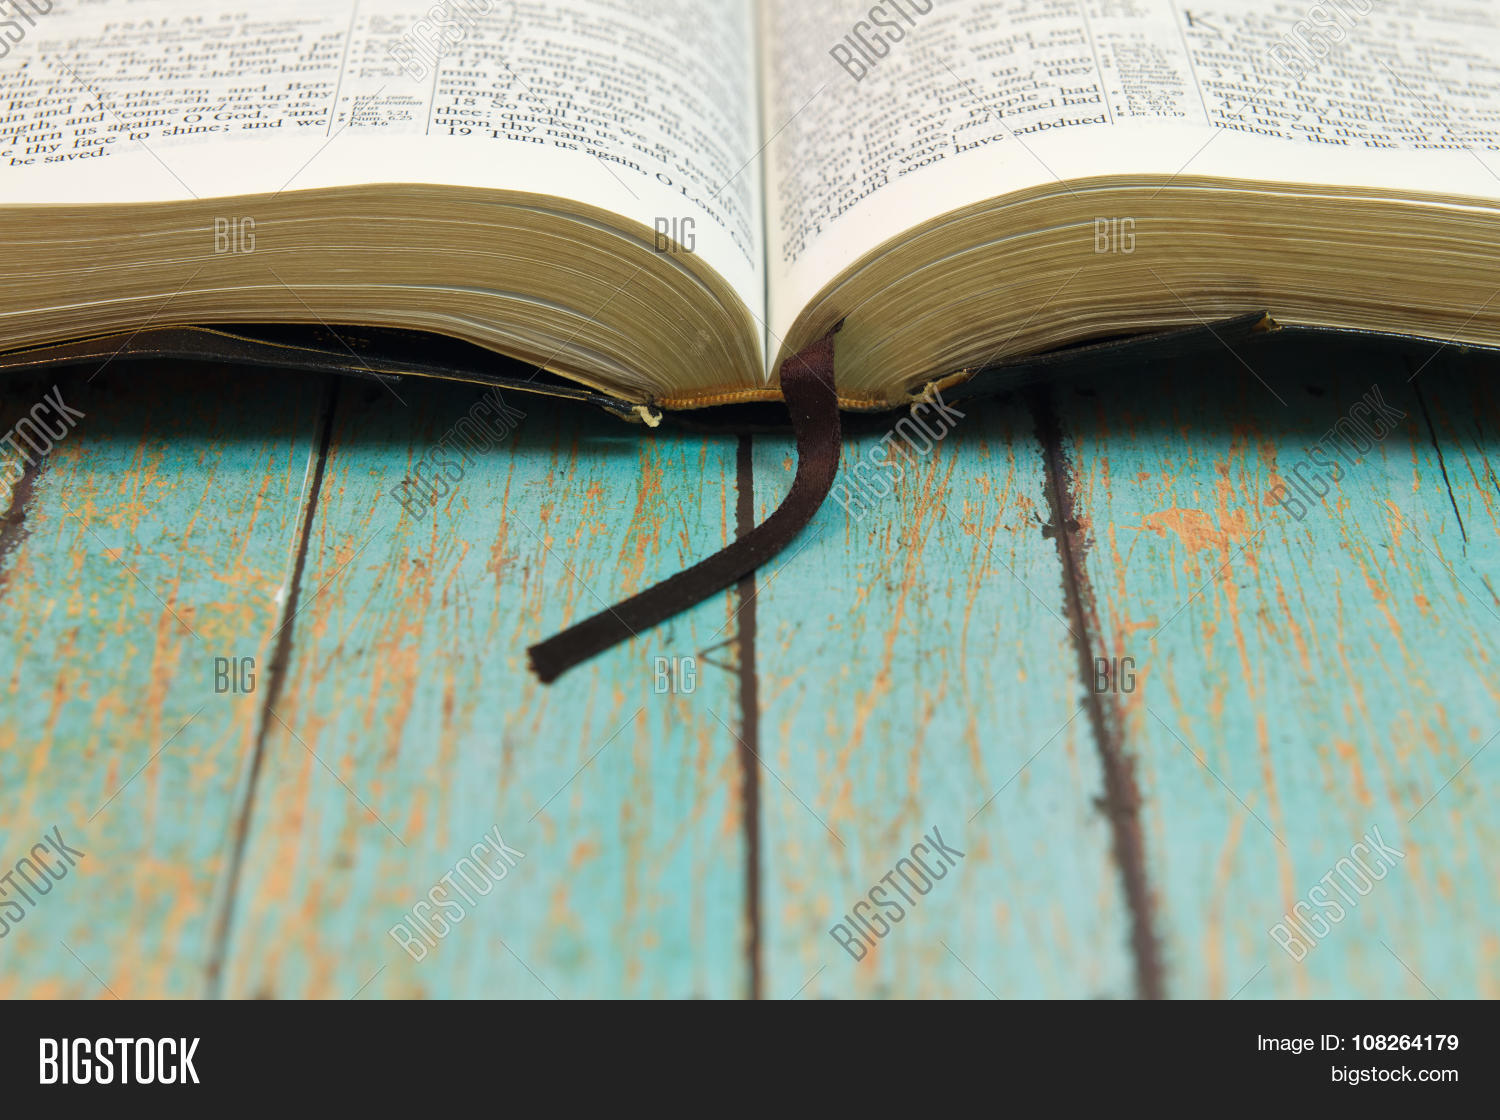 opened bible bookmark image photo free trial bigstock